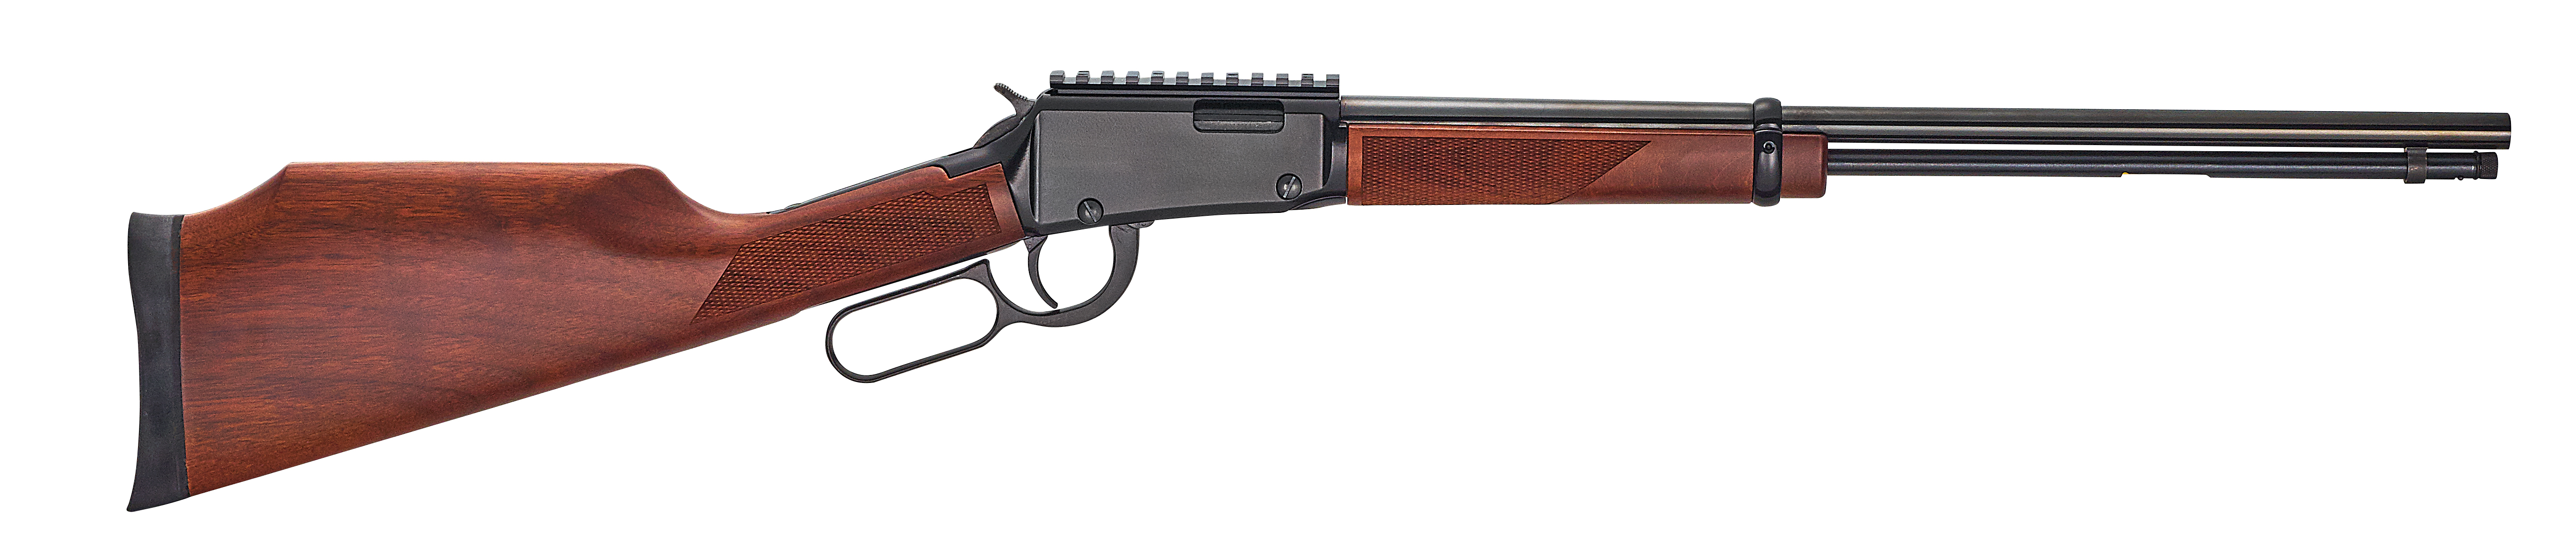 Henry Repeating Arms MAGNUM LEVER ACTION 22 MAGNUM